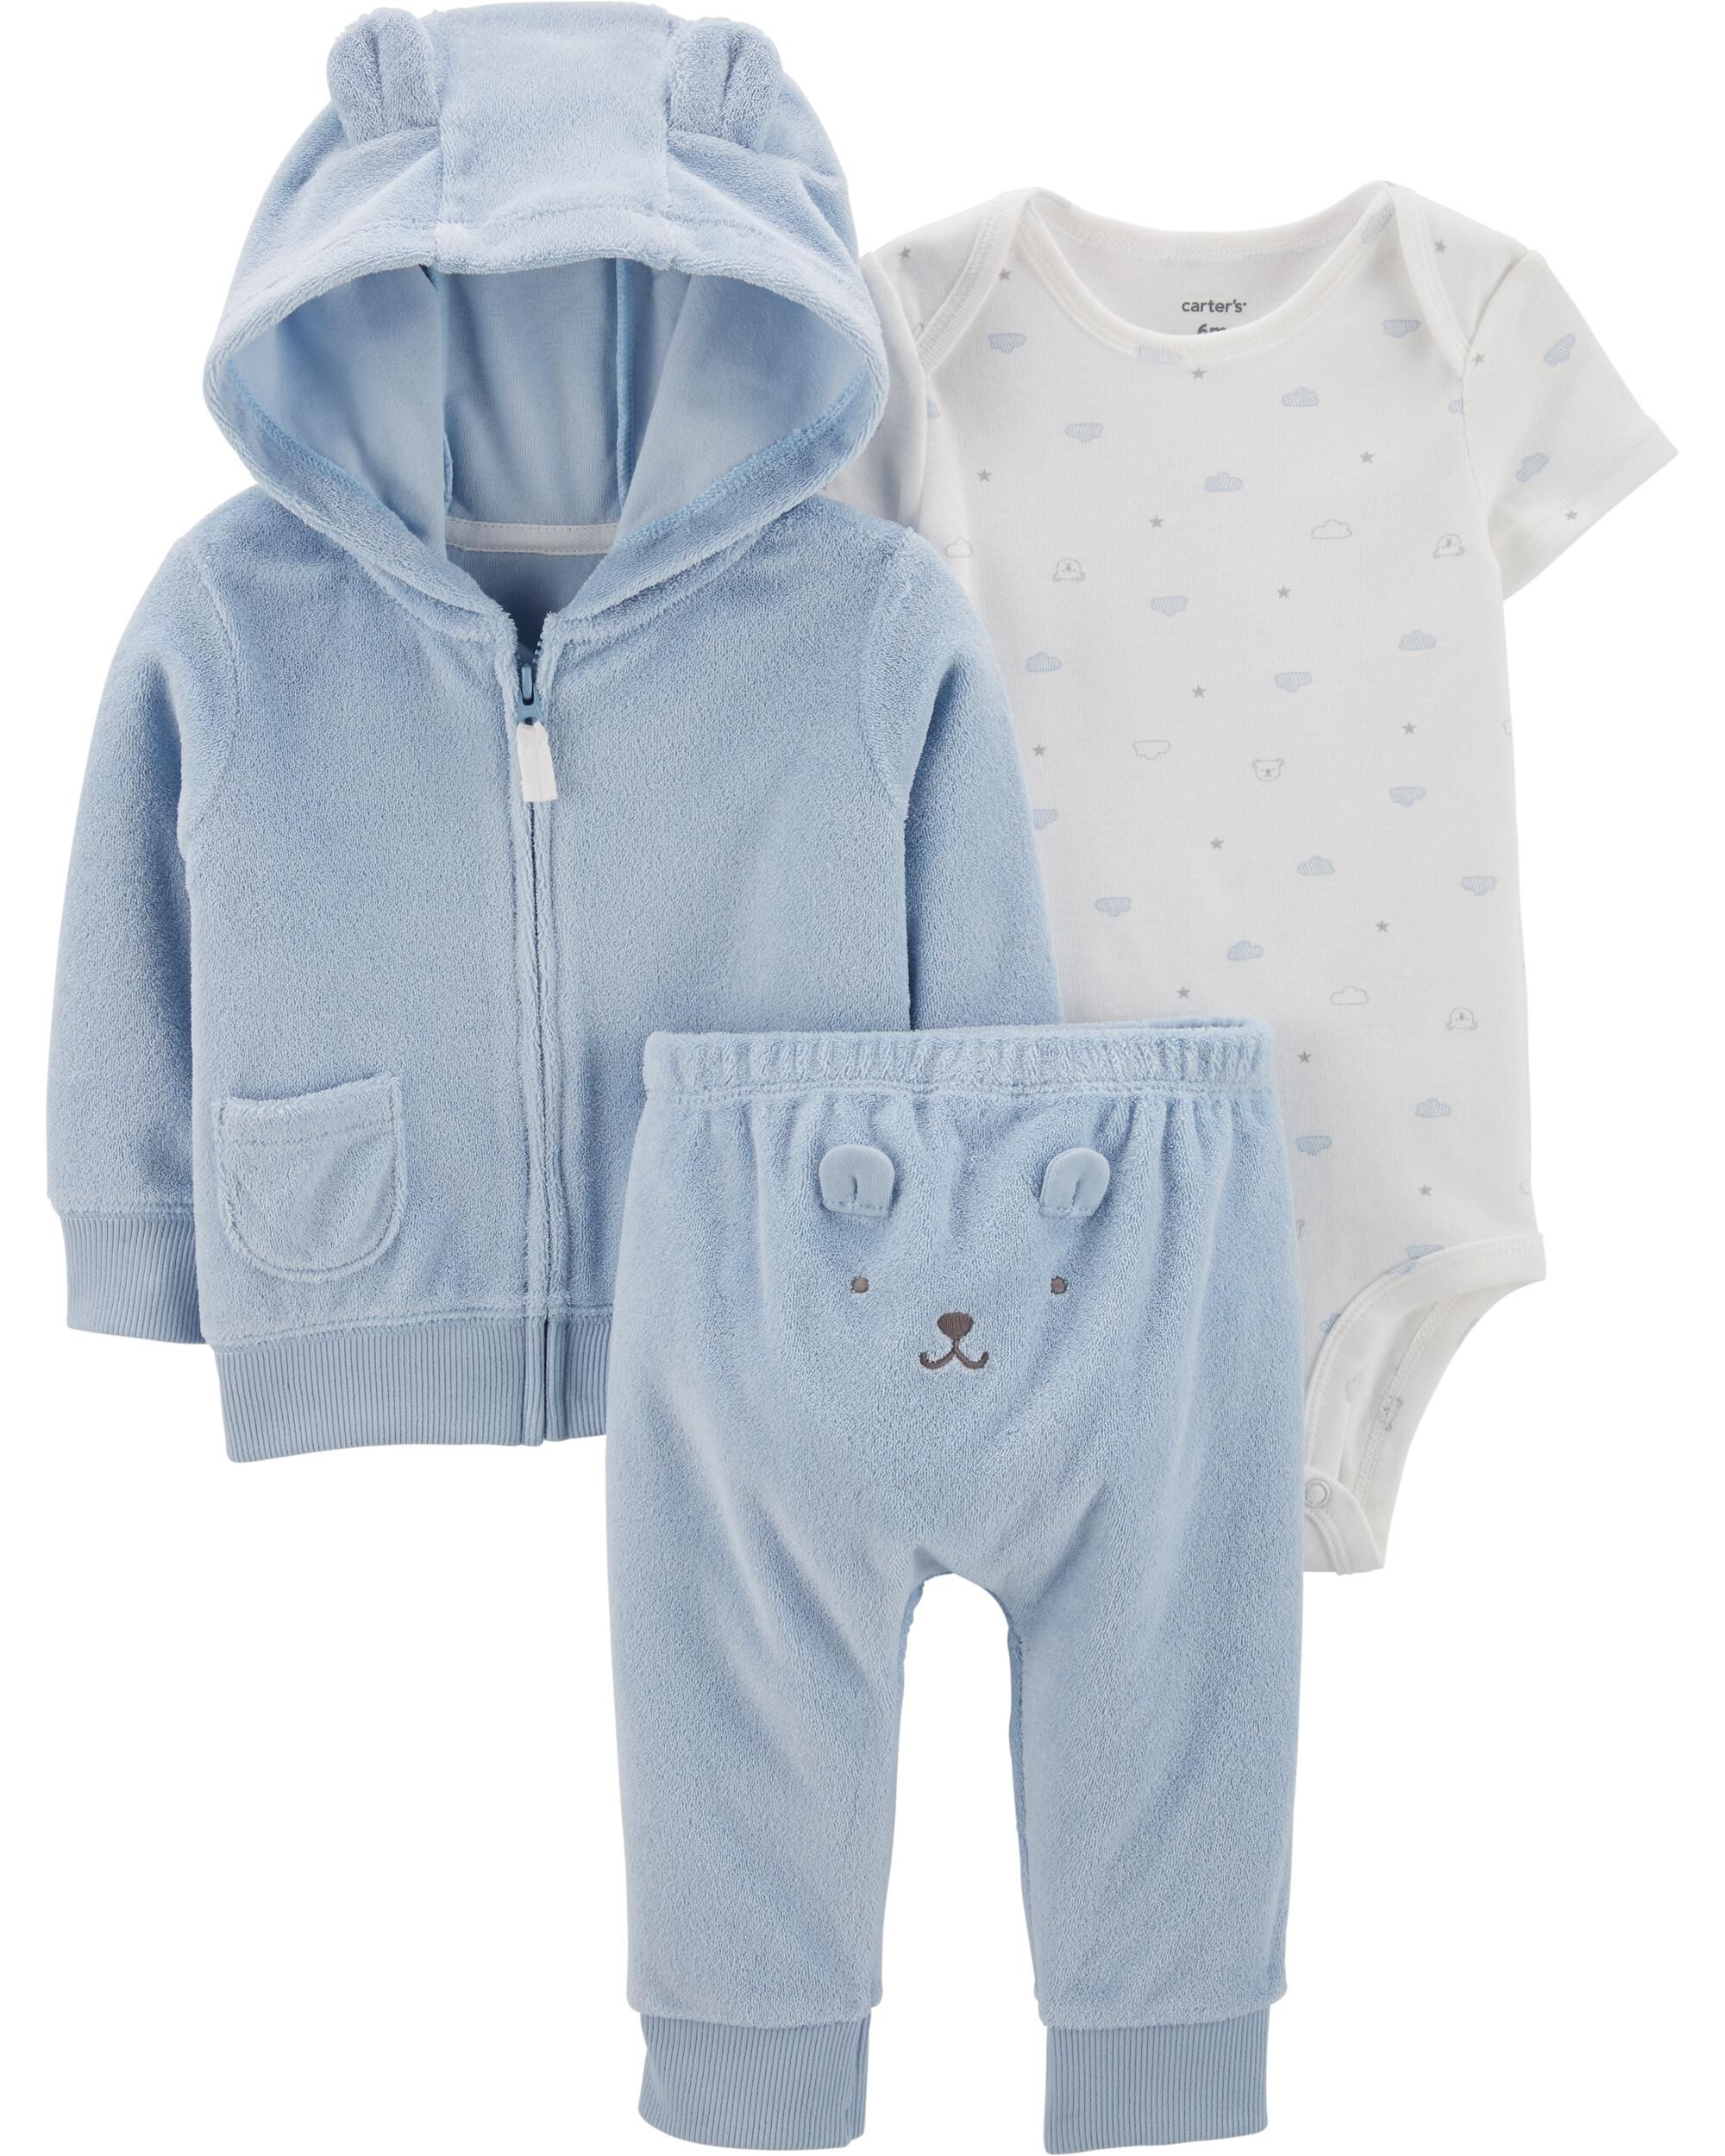 *CLEARANCE* 3-Piece Terry Little Jacket Set